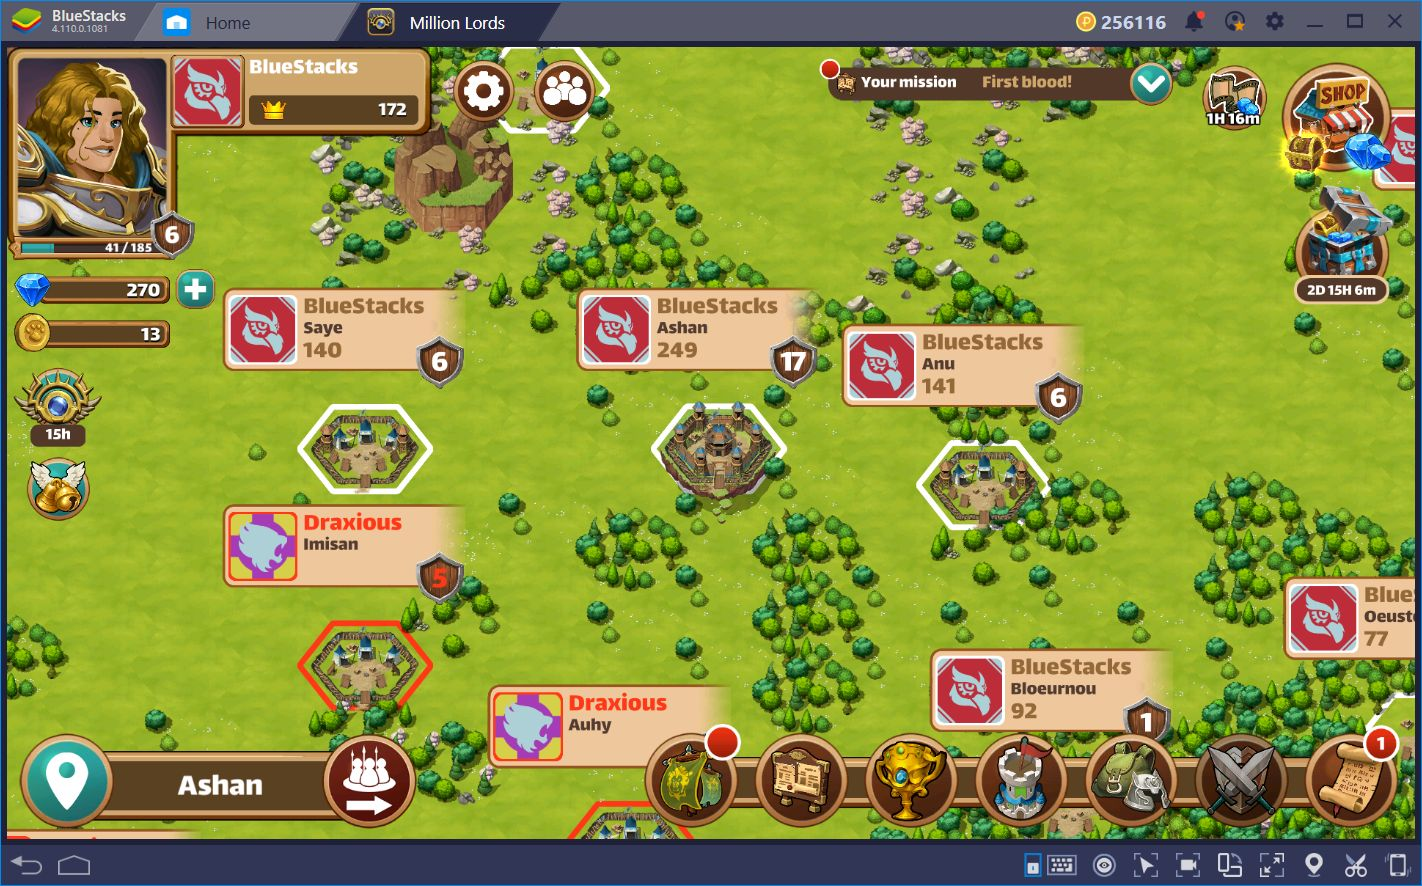 Conquering the Realm in Million Lords with BlueStacks